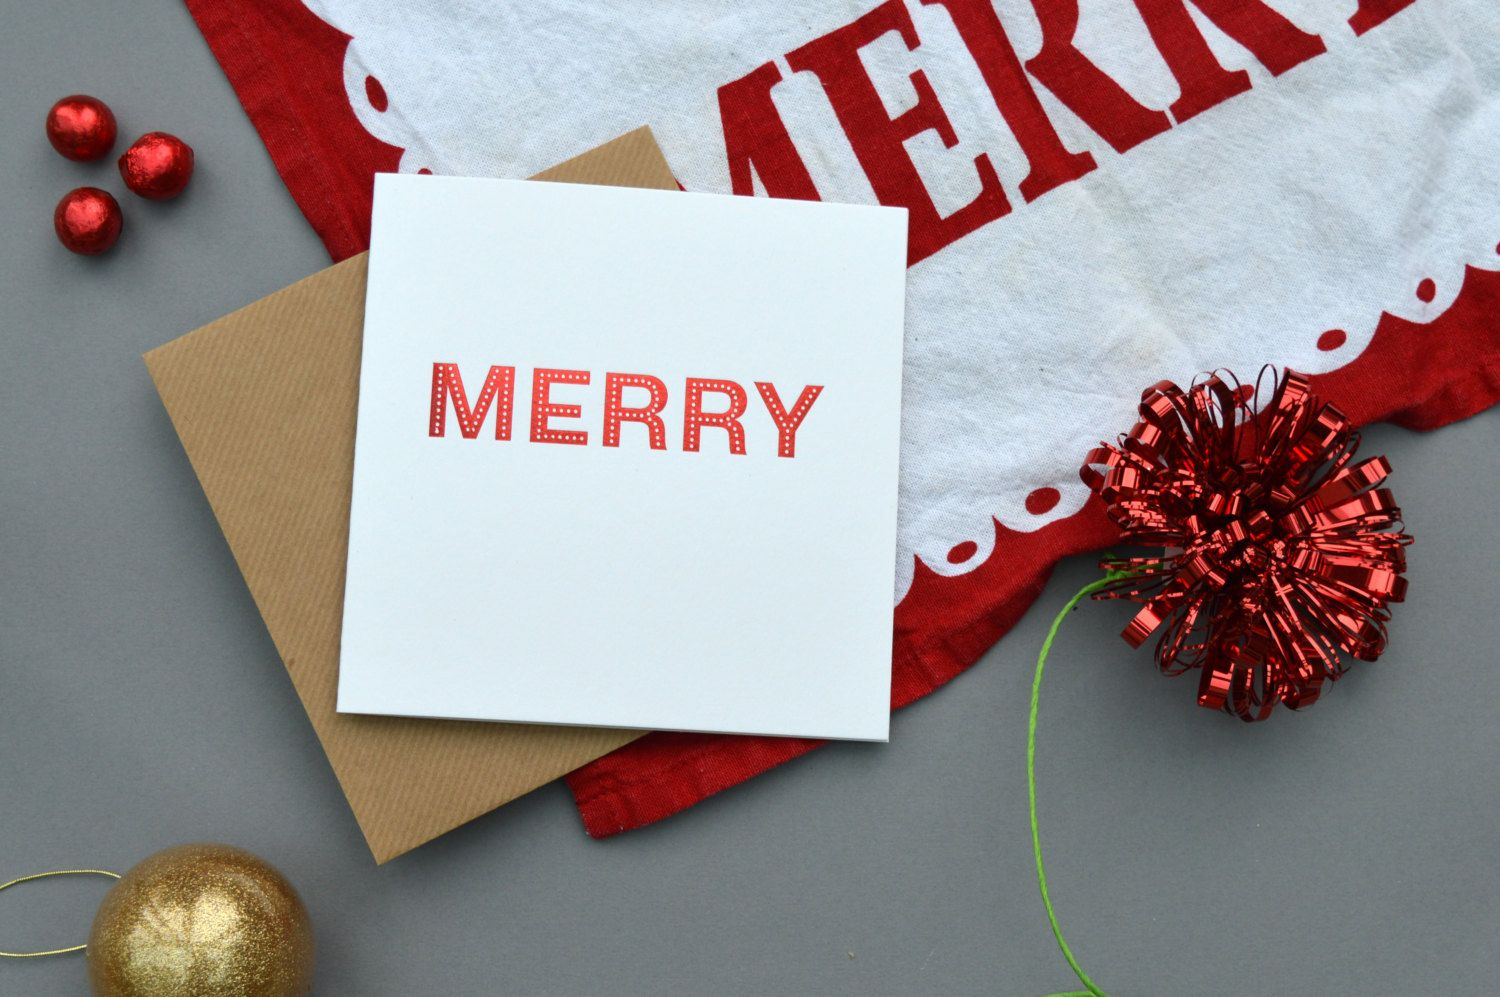 Merry Christmas Greetings cards - Letterpress Christmas Cards ...